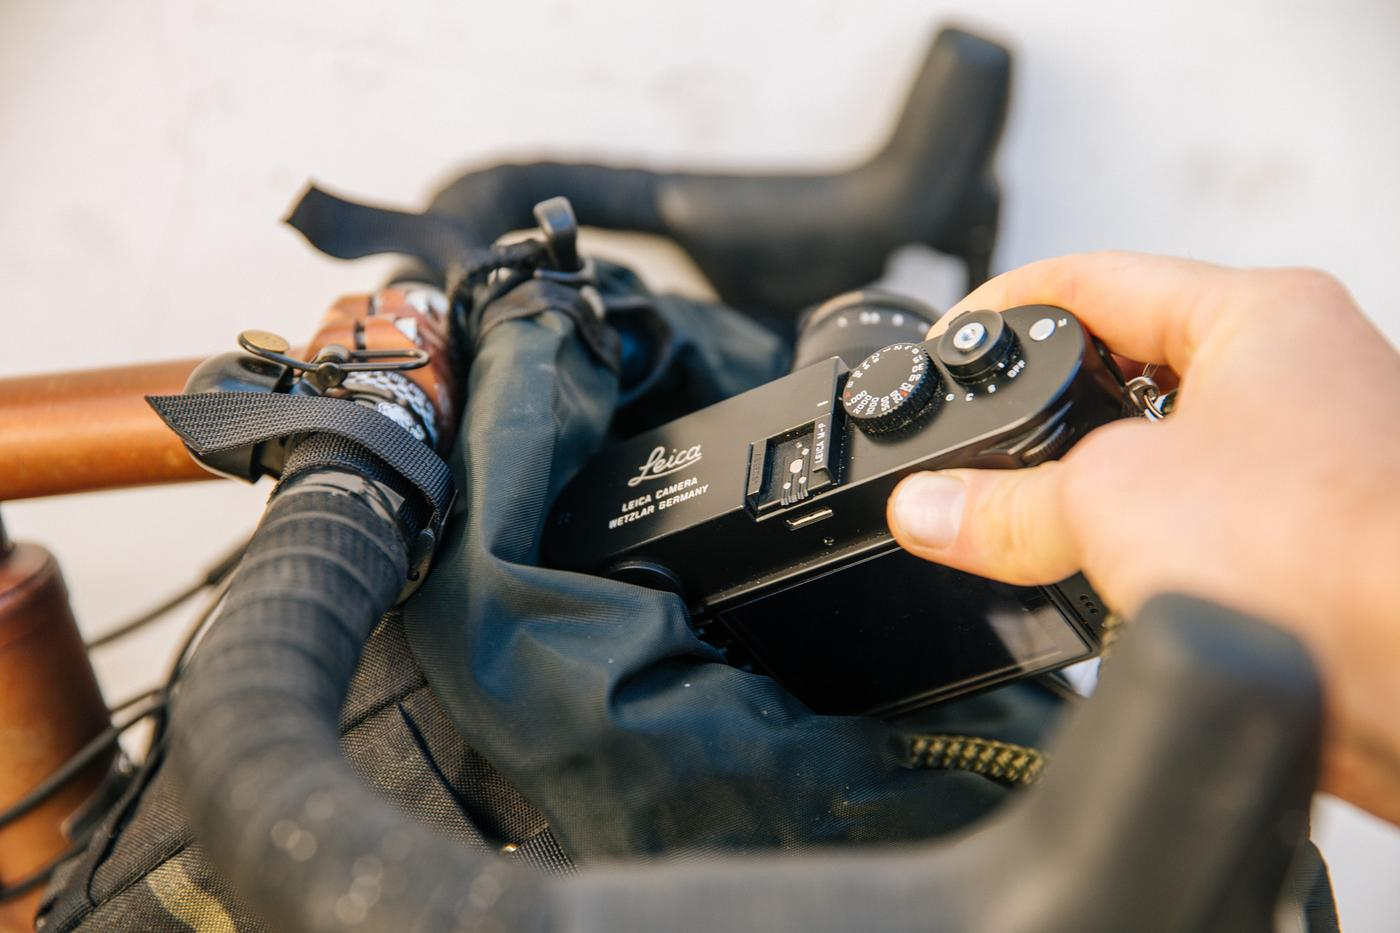 Outershell Makes the Best On-the-bike Camera Bag